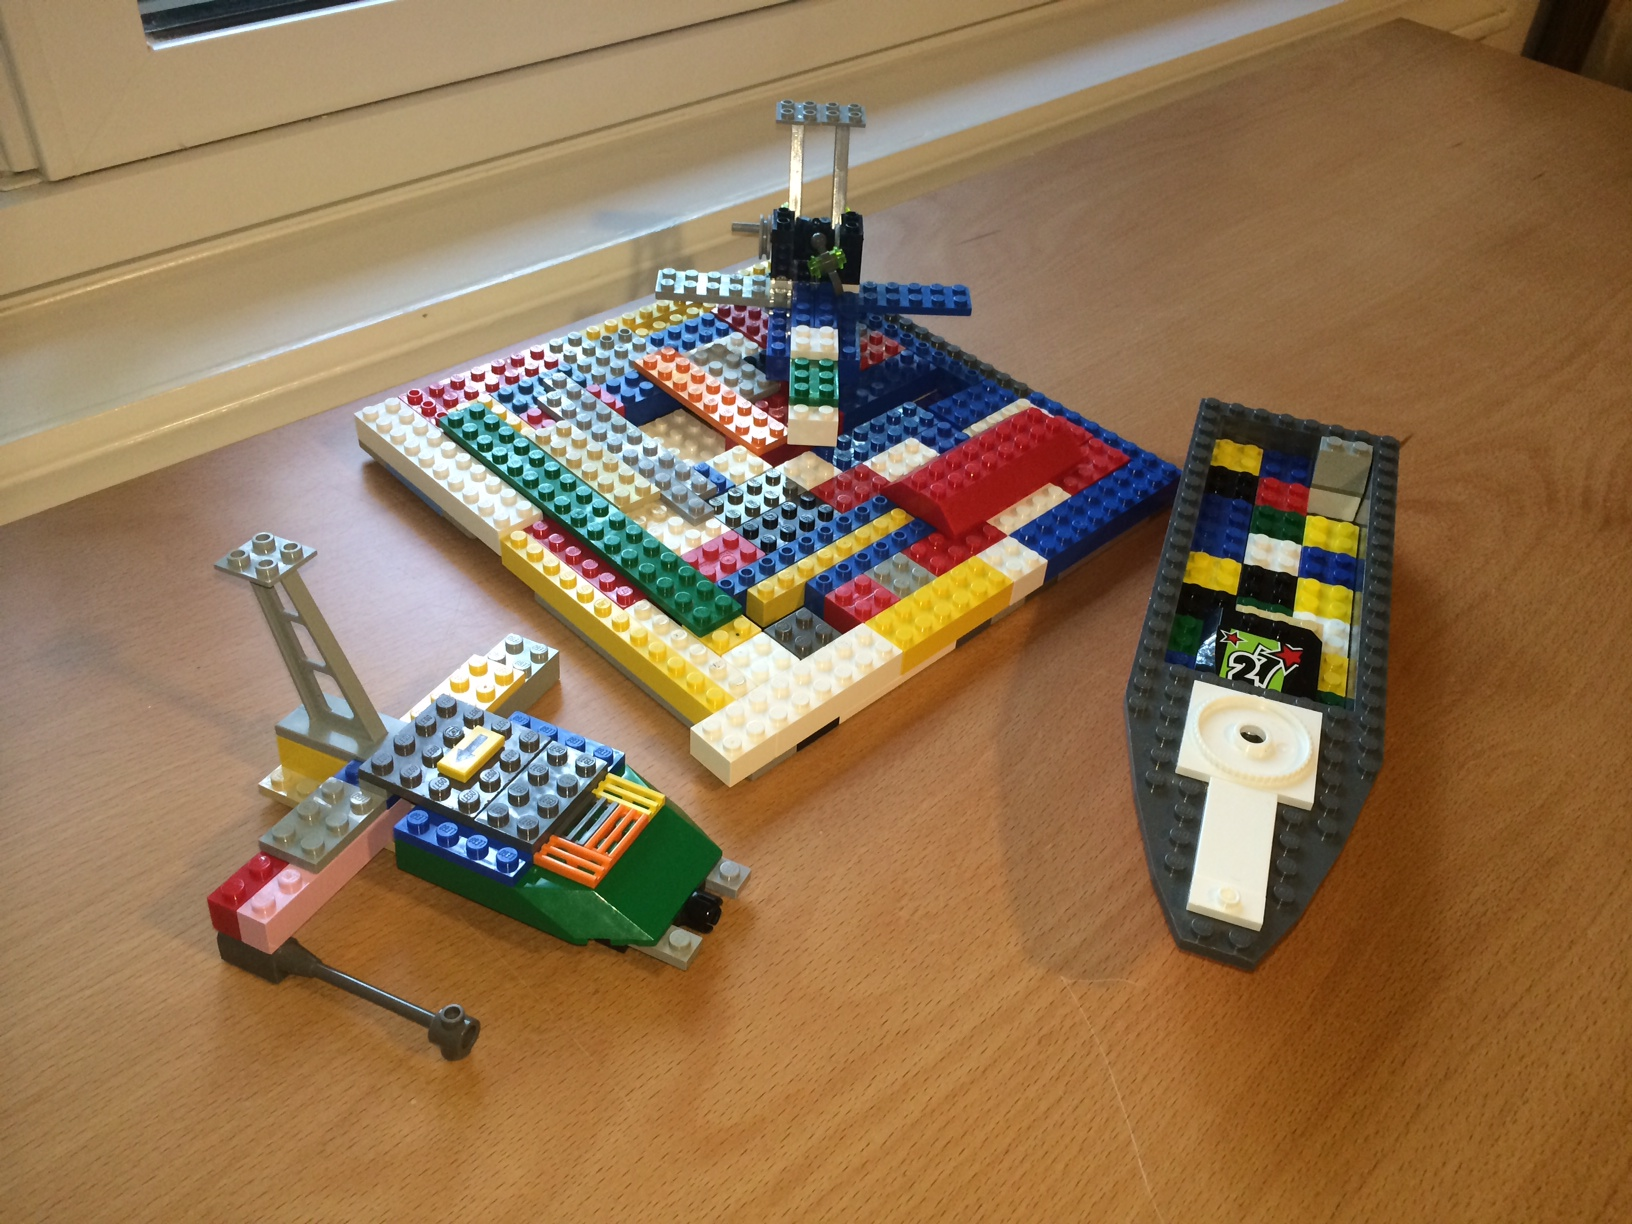 The picture depicts three LEGO compositions. On the left is a colorful airplane or spaceship; in the middle is another colorful airplane on a LEGO landing pad; to the right is a grey LEGO boat with a colorful floor.